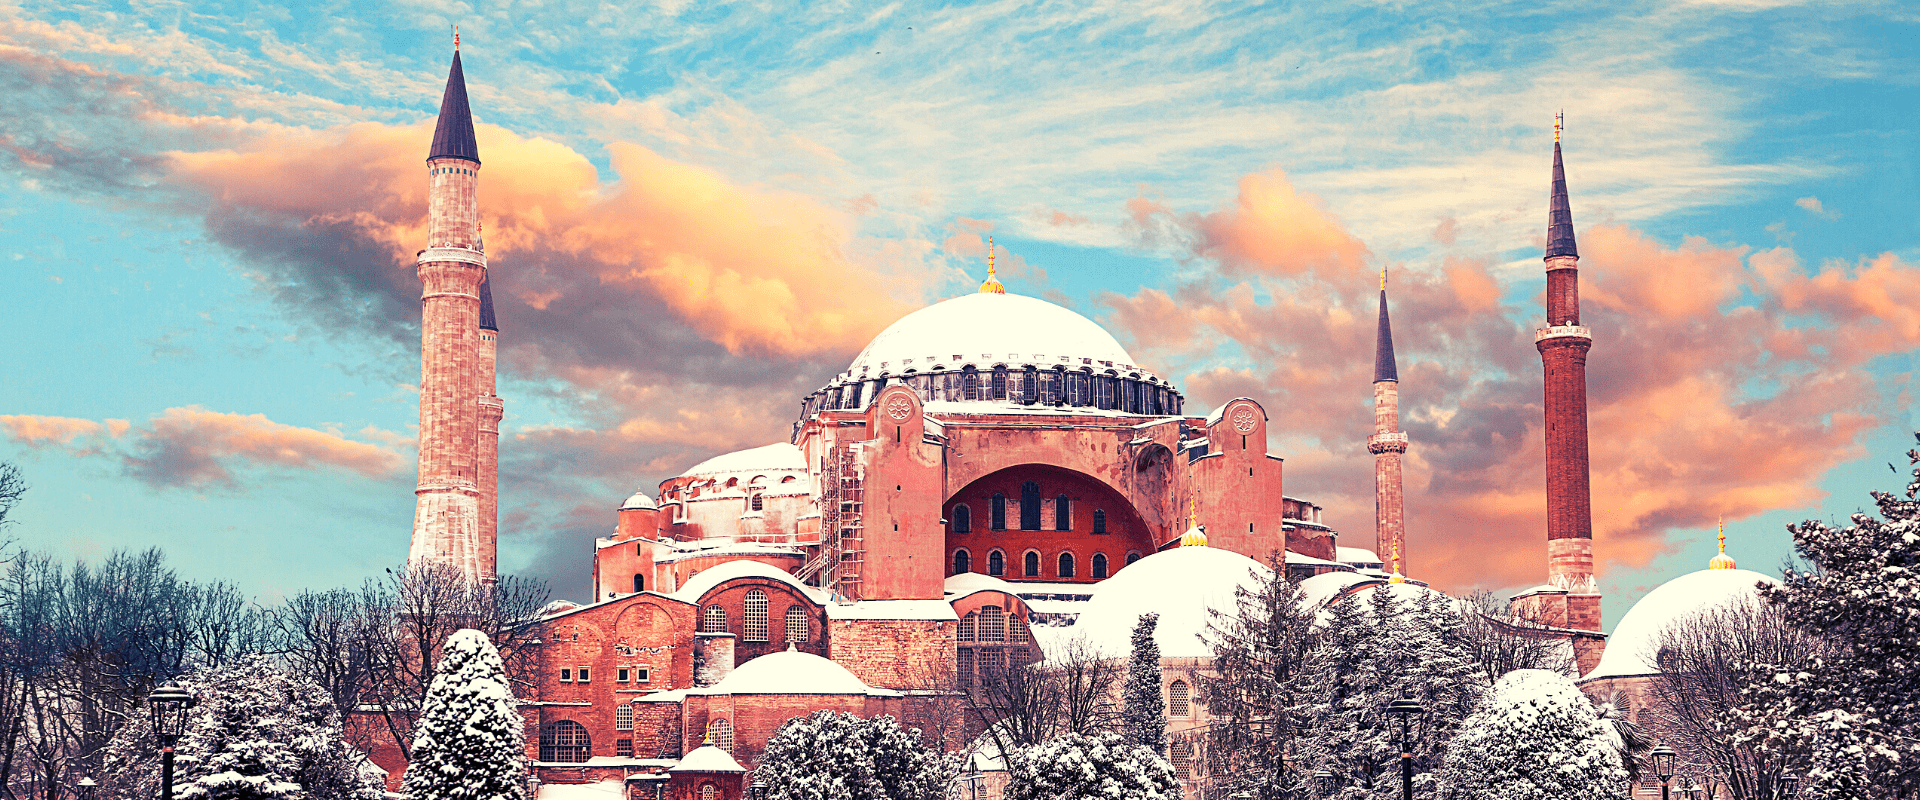 The Seven Churches of Revelation - Istanbul.